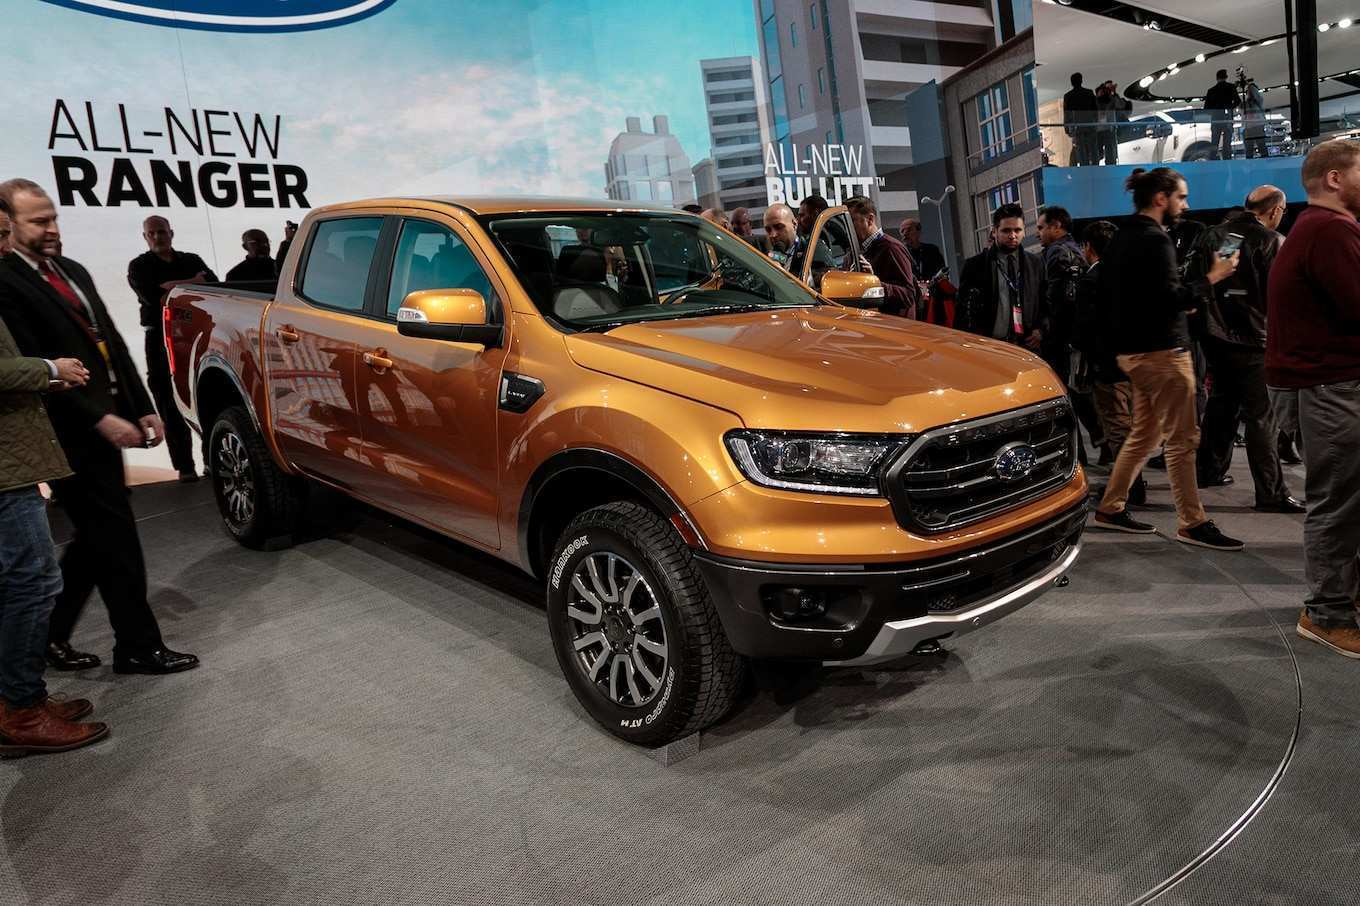 35 Best Review 2019 Ford Ranger Aluminum Images with 2019 Ford Ranger Aluminum